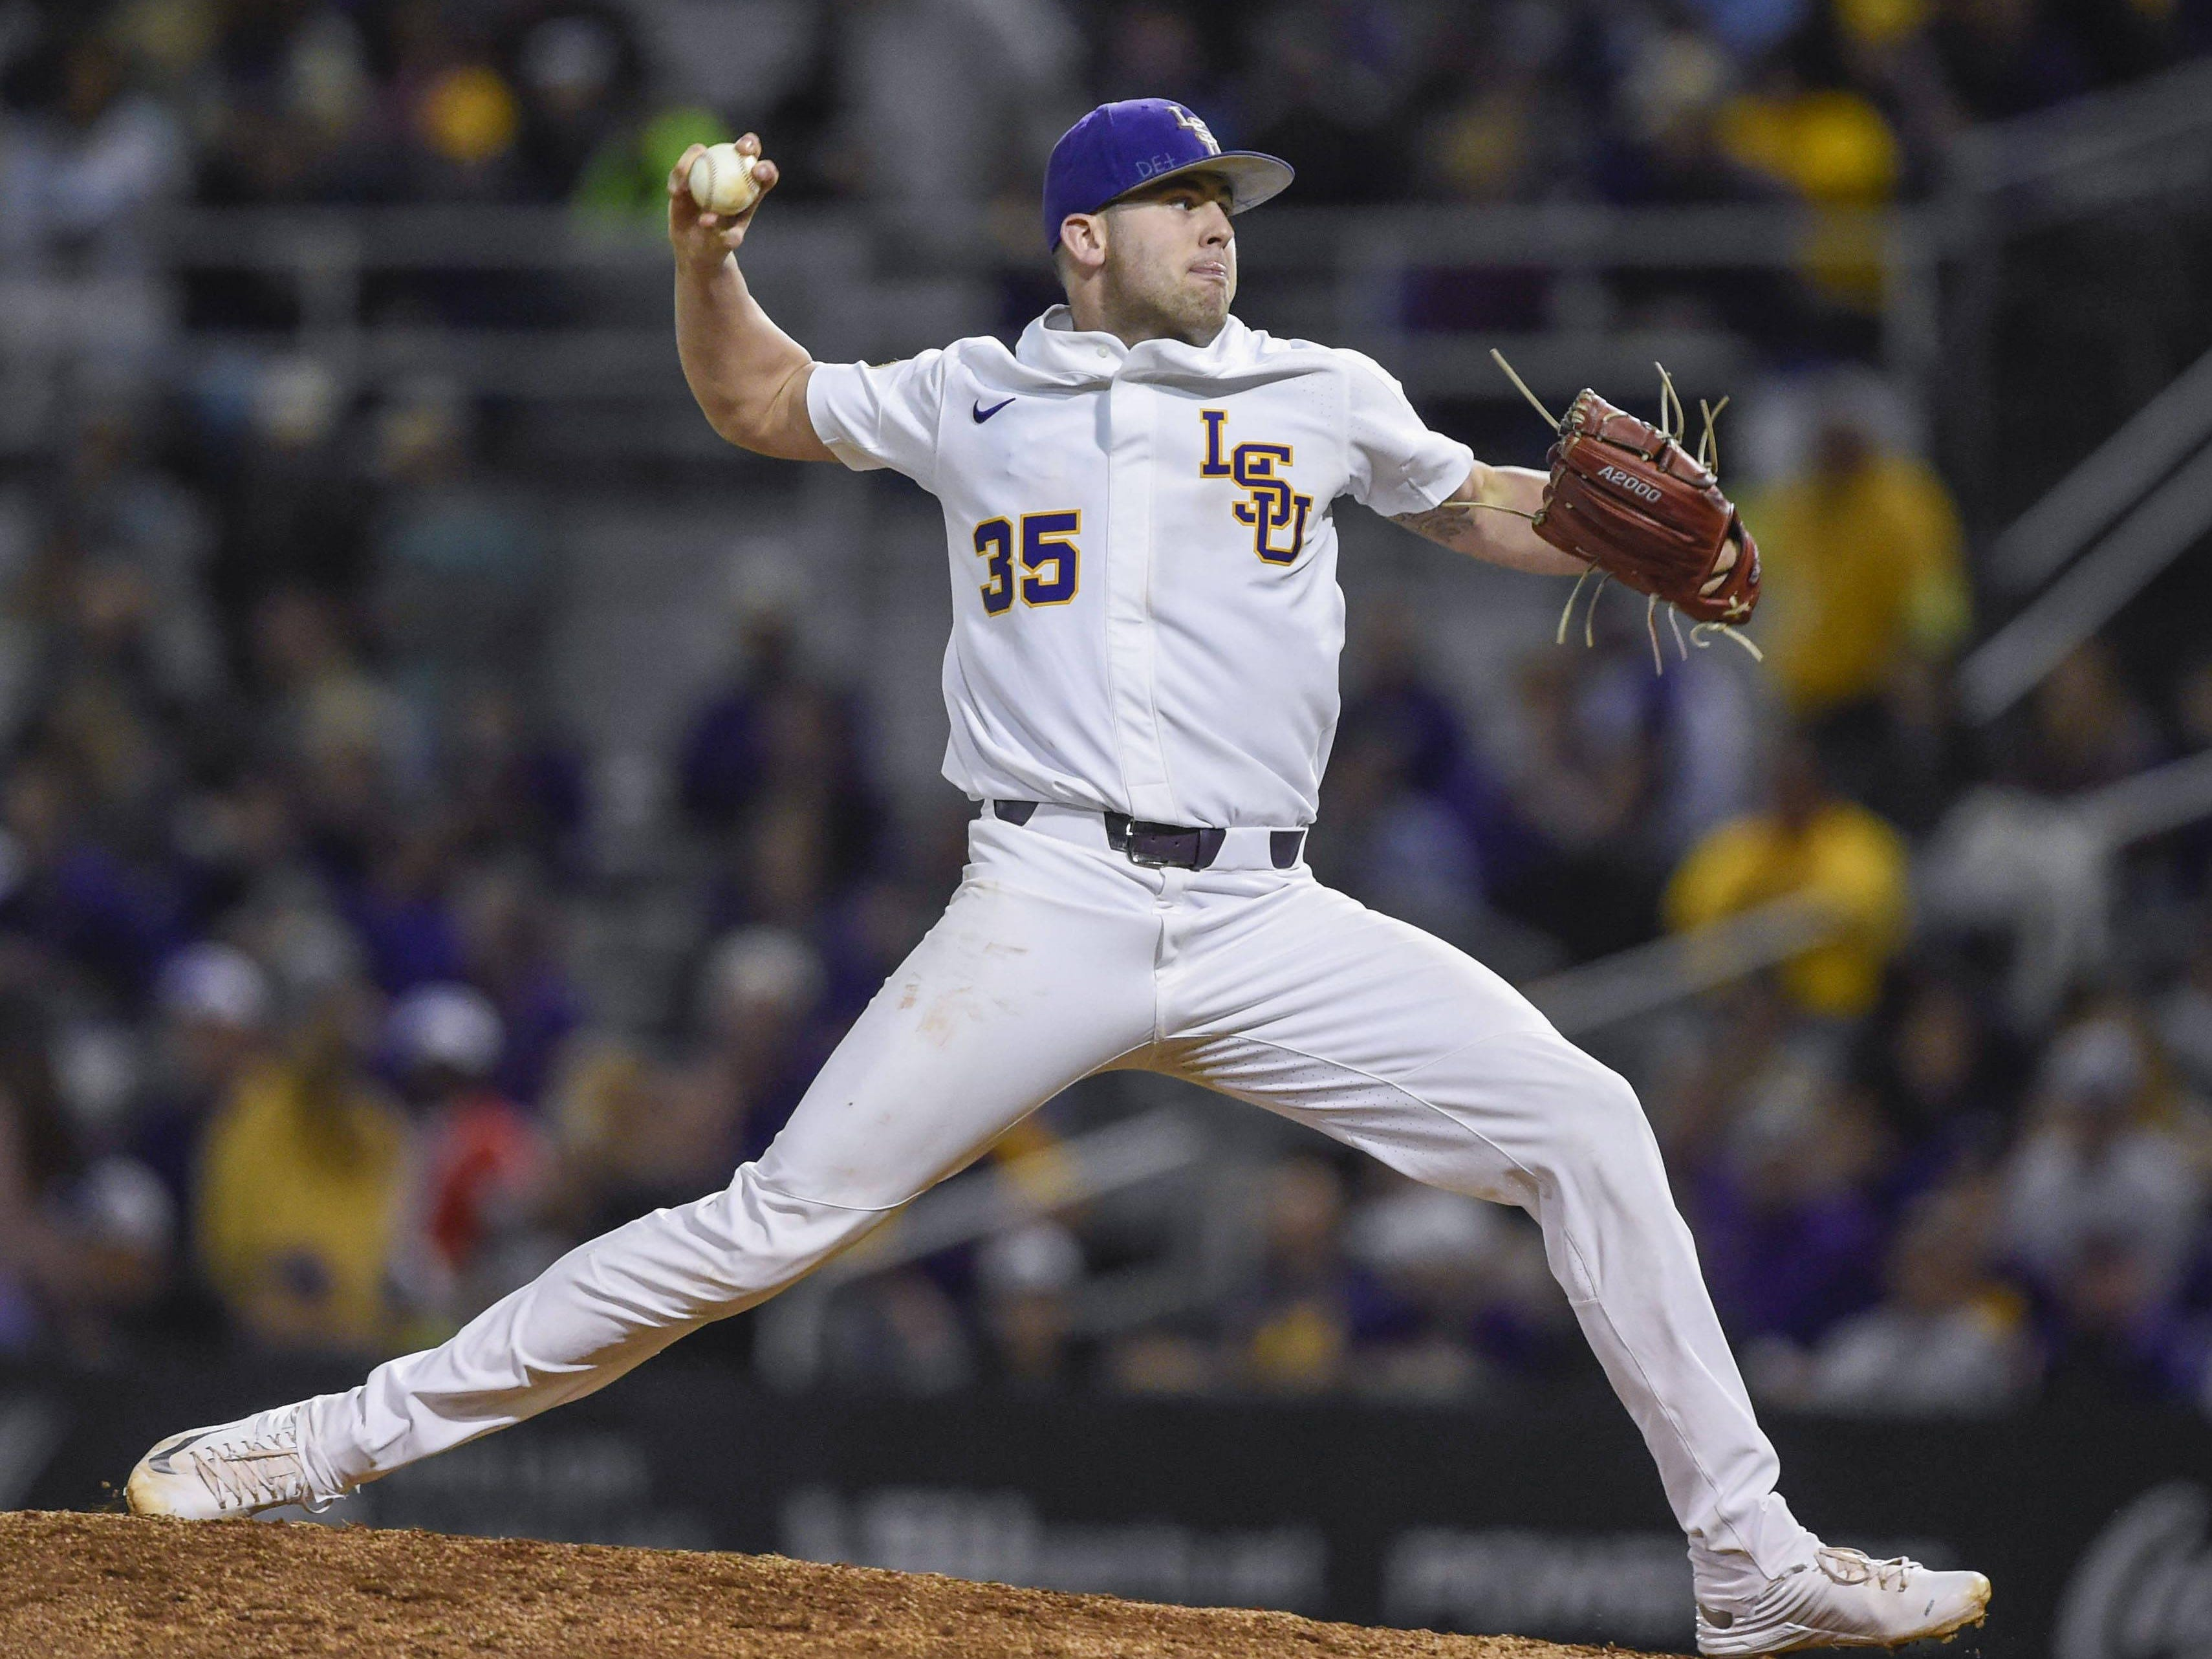 Alex Lange allowed two runs in 7 1-3 inning at Alabama on Thursday night.